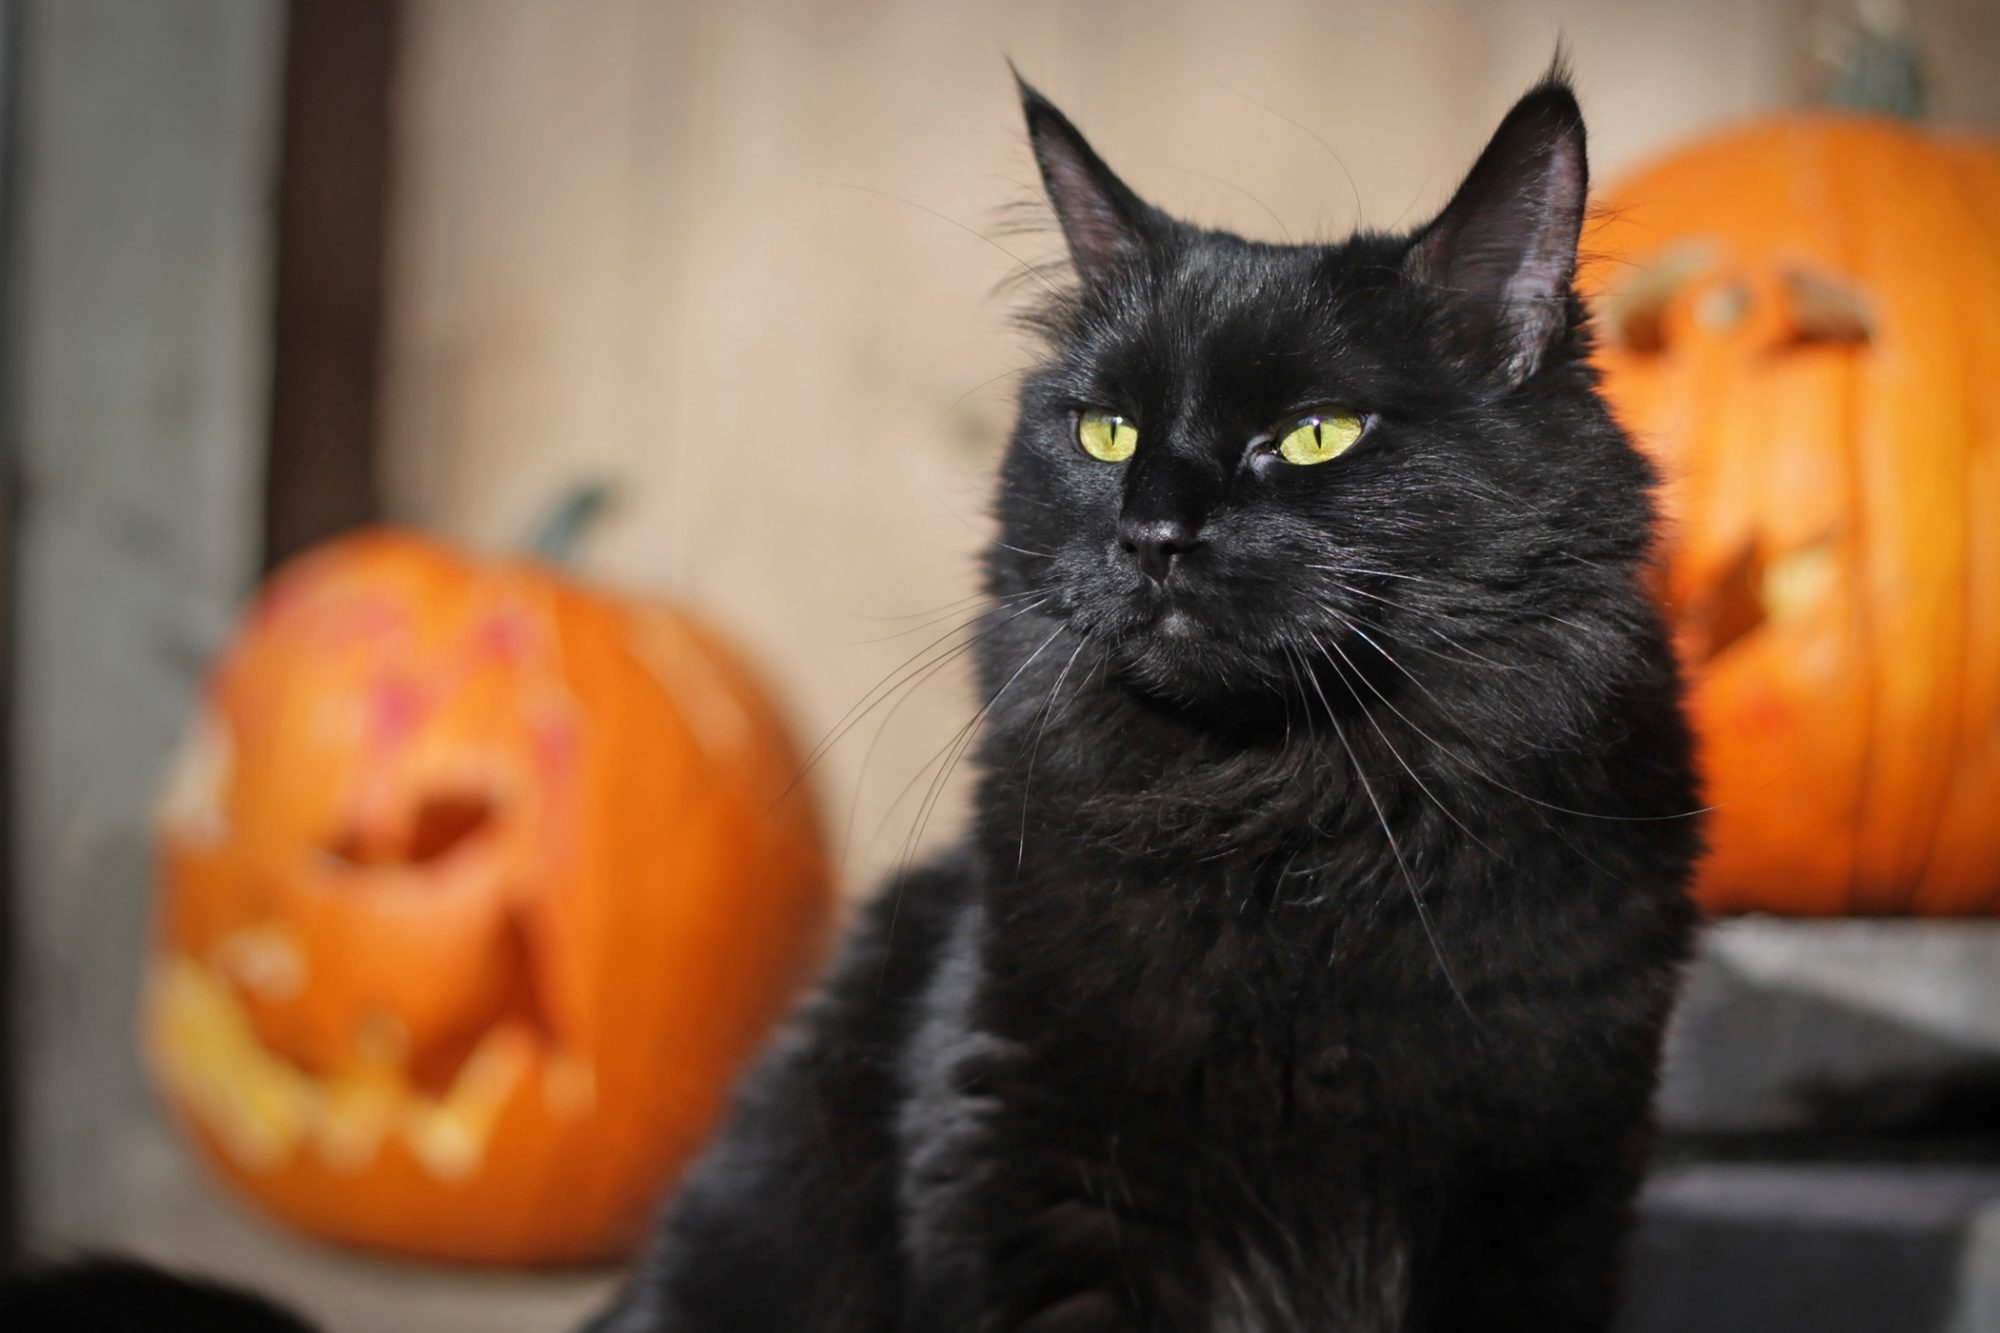 black cat sitting with pumpkins